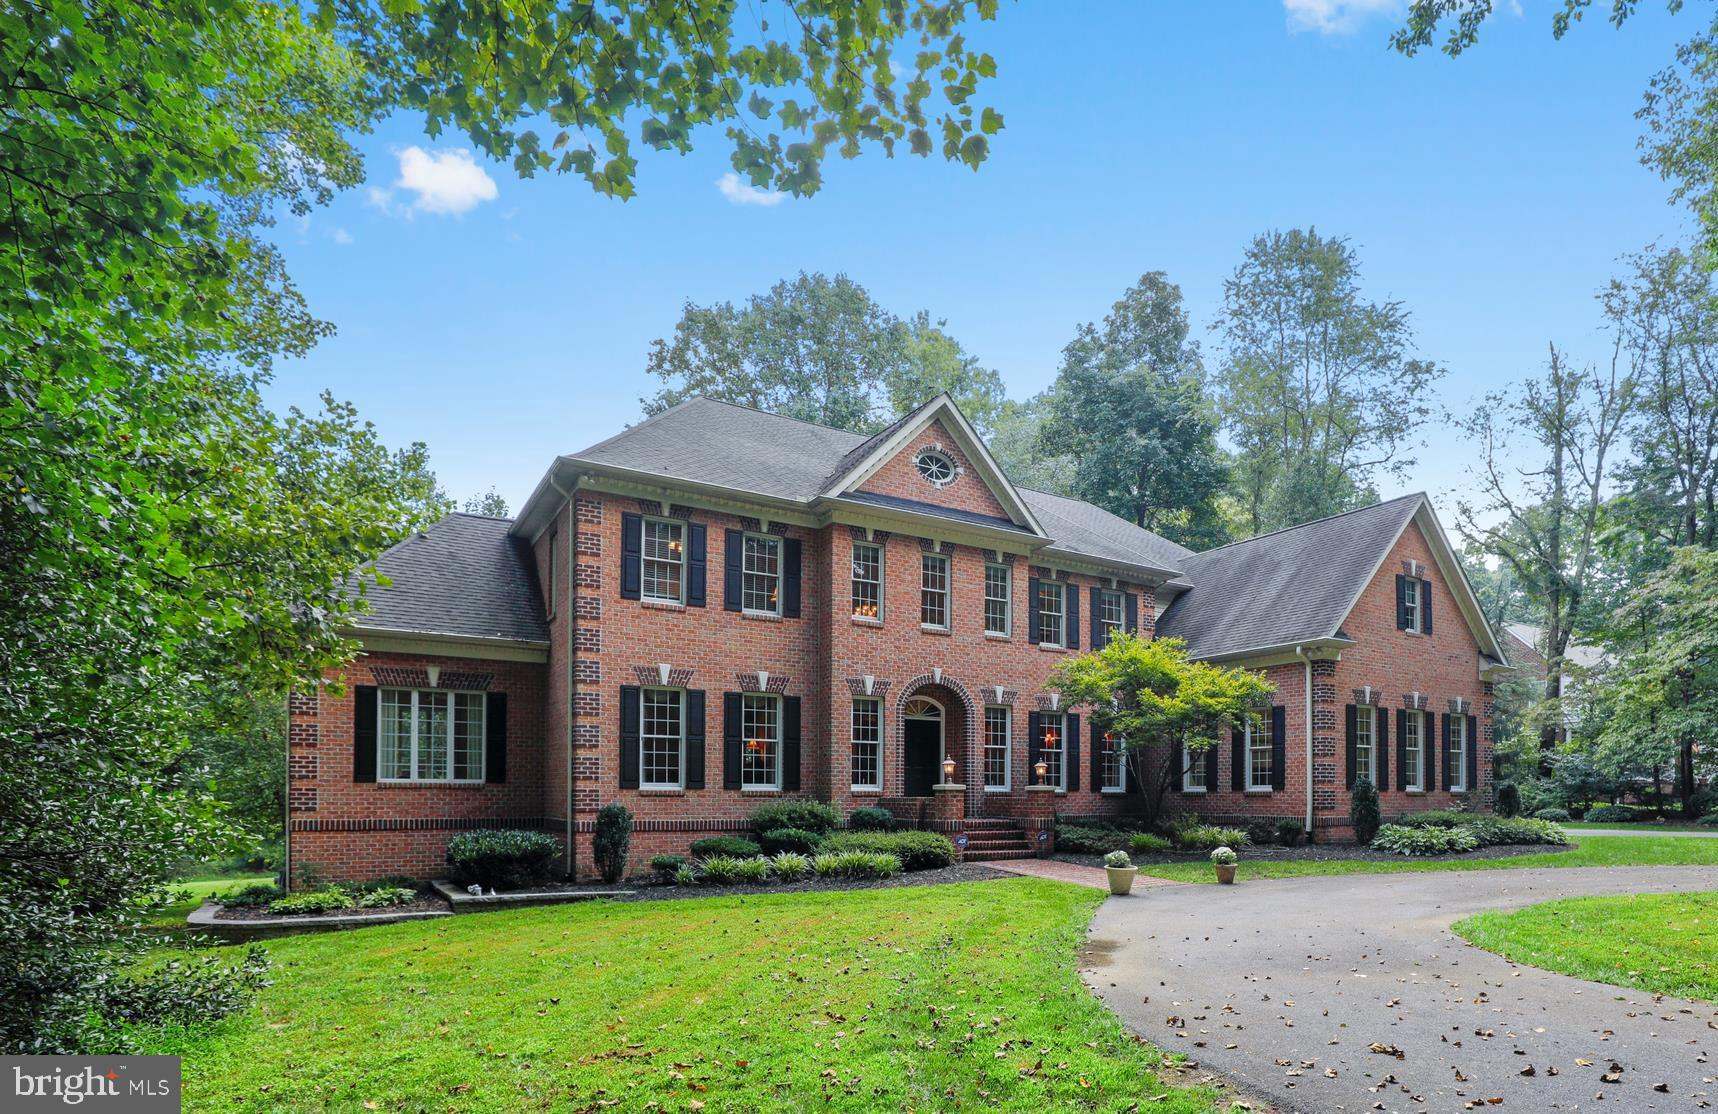 13337 PIPES LANE, WEST FRIENDSHIP, MD 21794